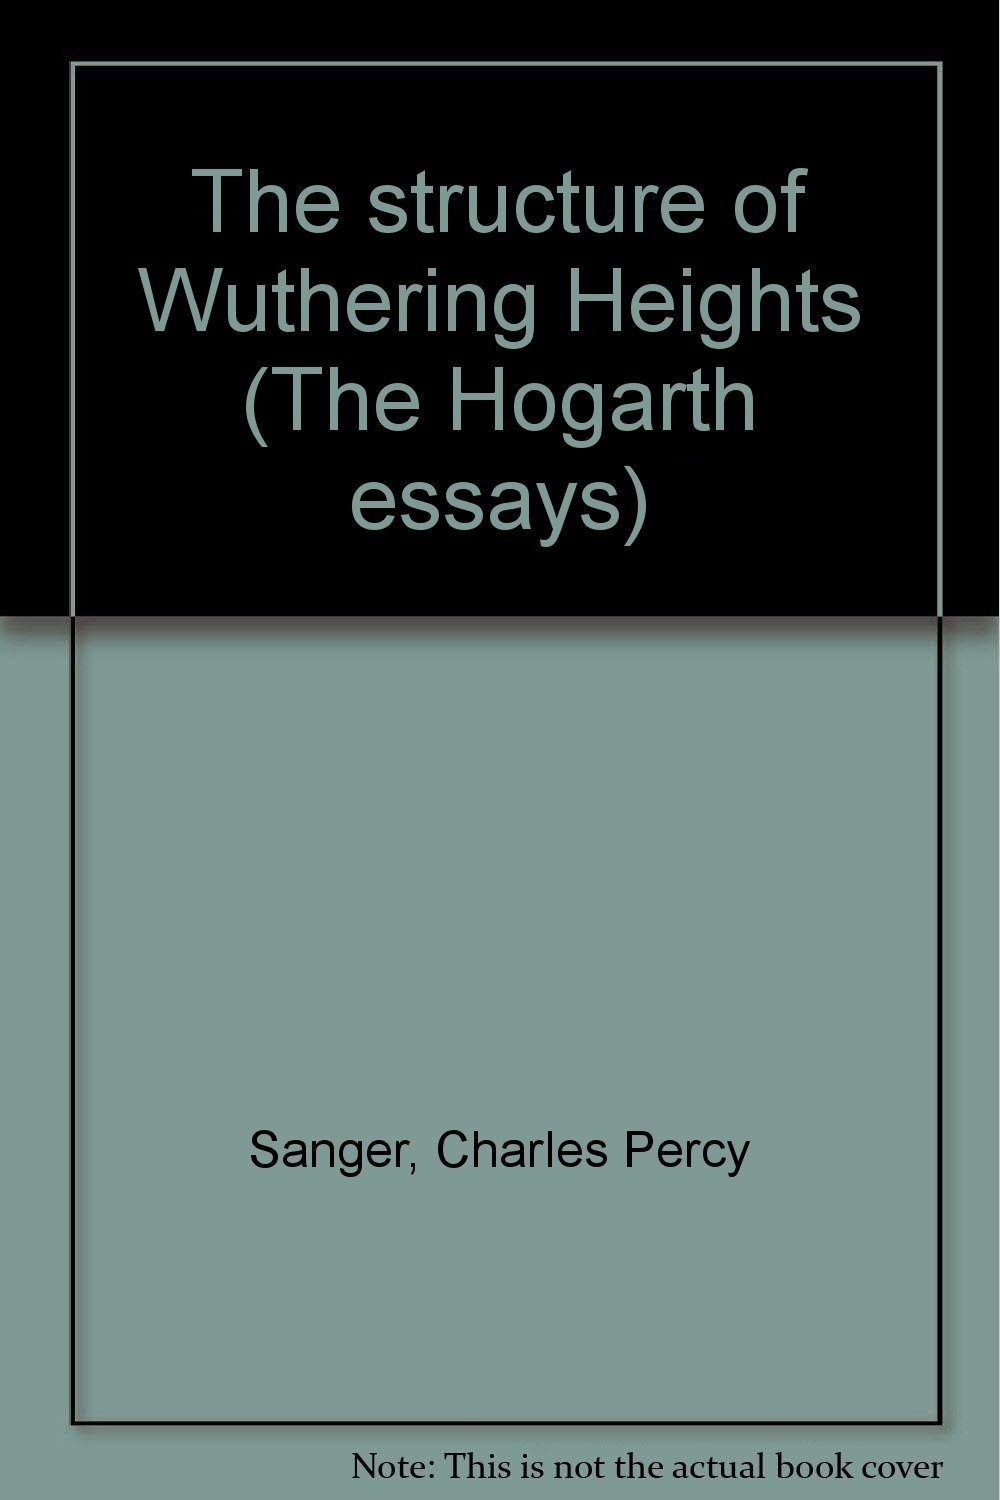 the structure of wuthering heights the hogarth essays charles percy sanger amazoncom books